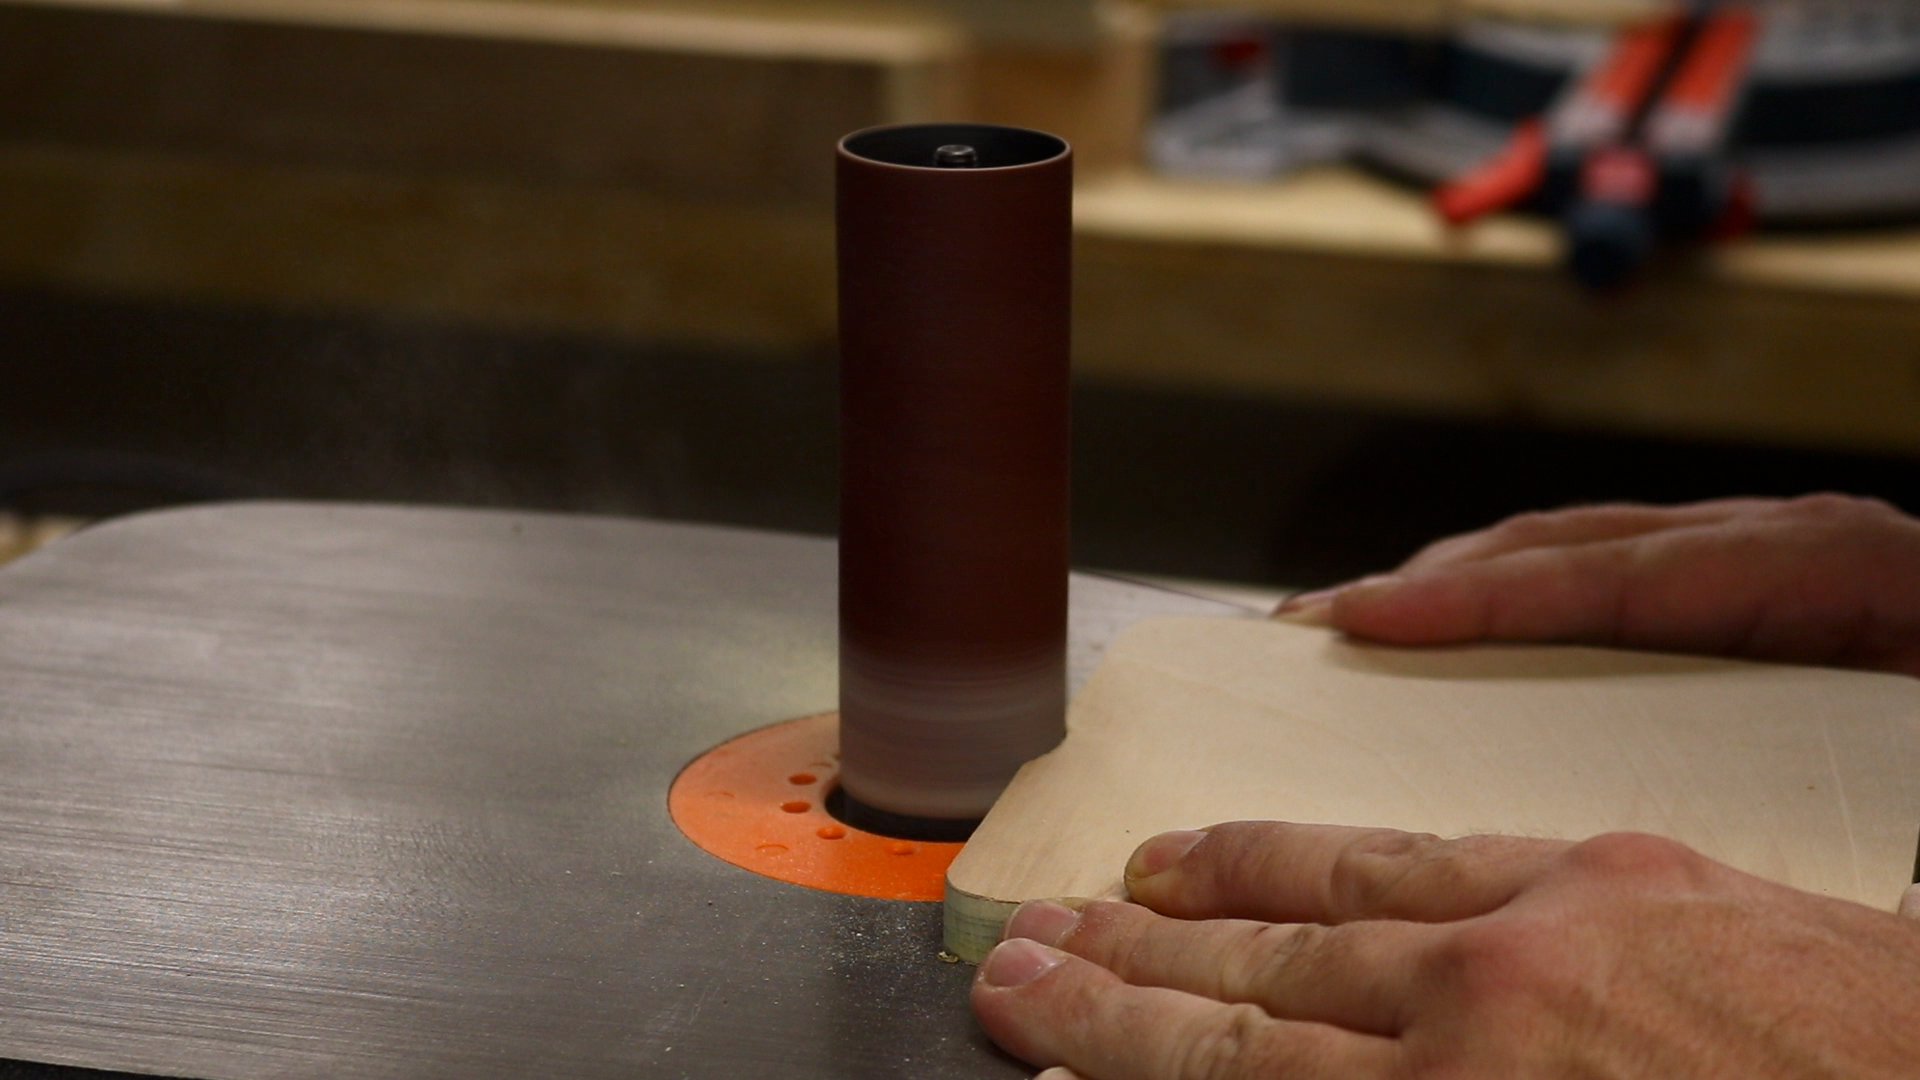 Sanding out a pull spot on the insert